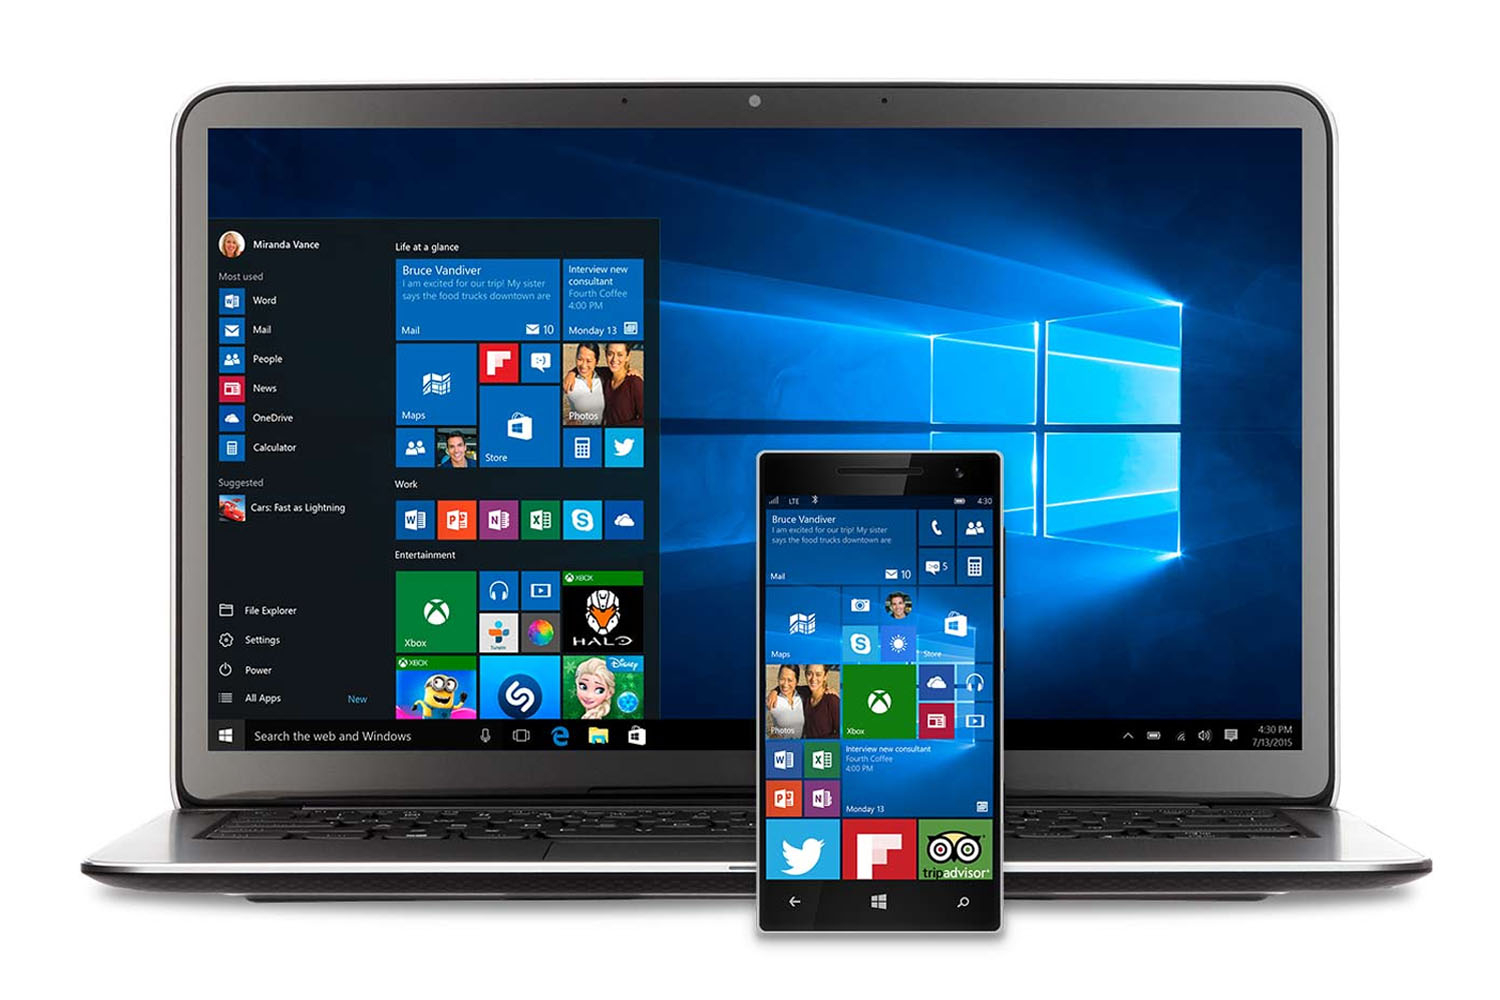 4 Amazing Things From The New Windows 10 Update